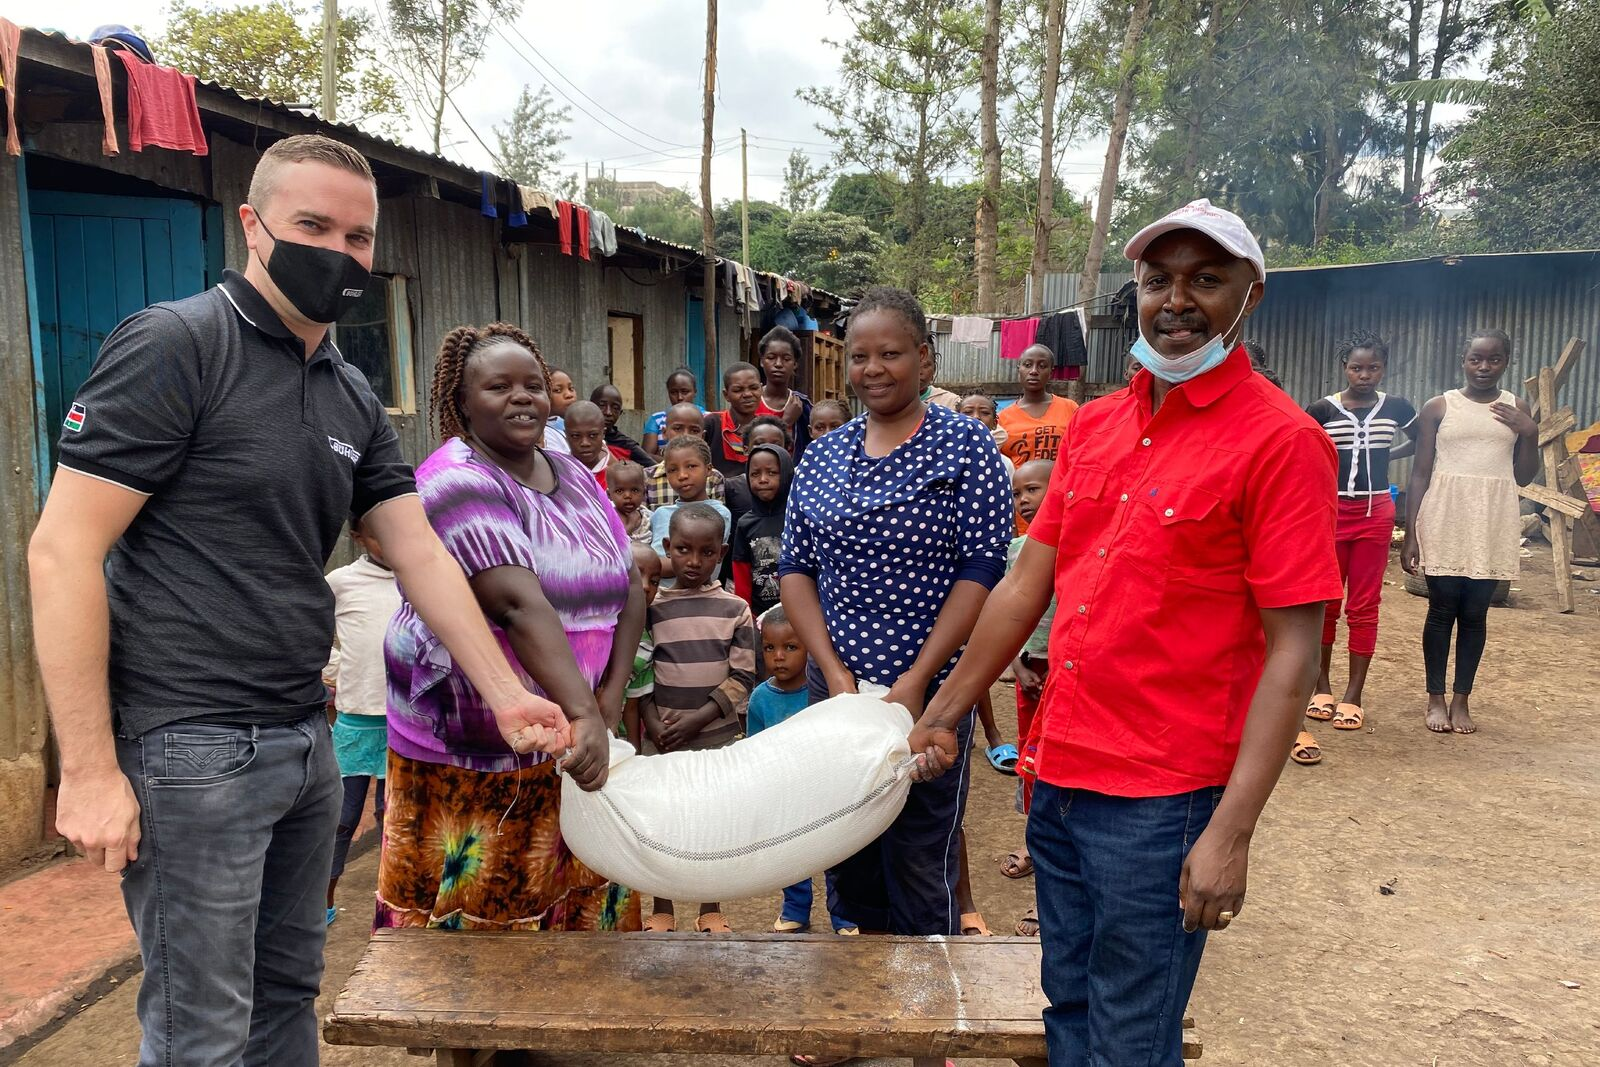 Stefan Lutz, Head of the African Milling School, donates fortified maize flour to the children's homes.